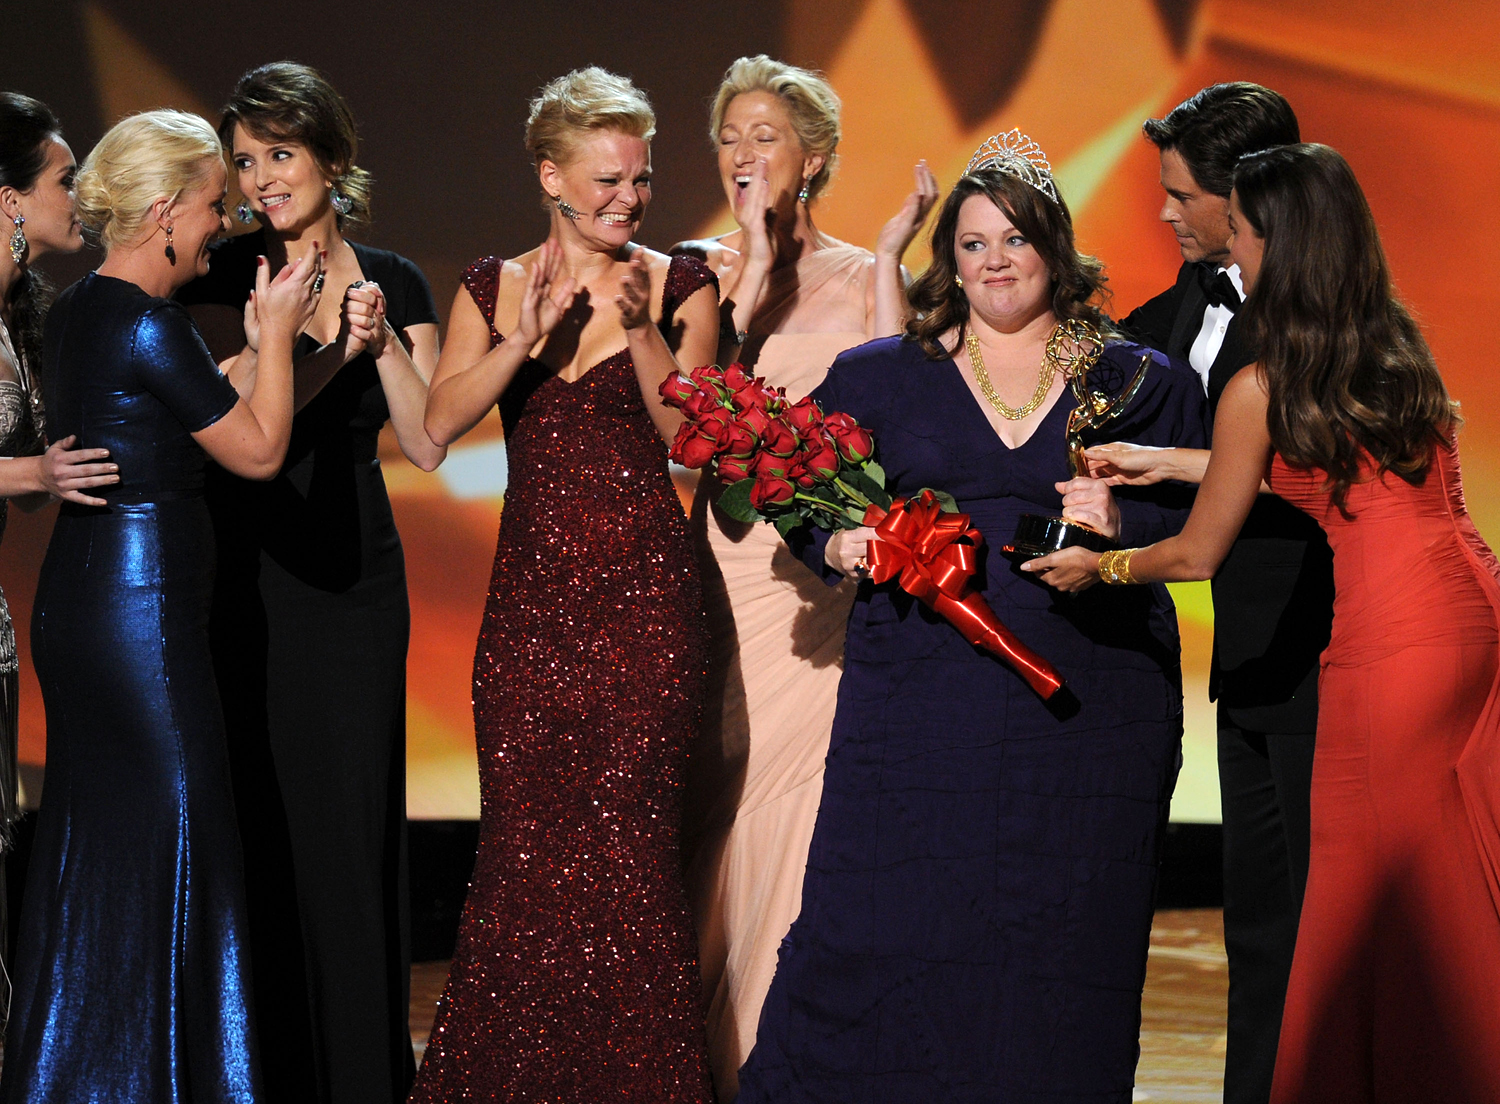 20 Most Memorable Emmy Moments in the Last 20 Years